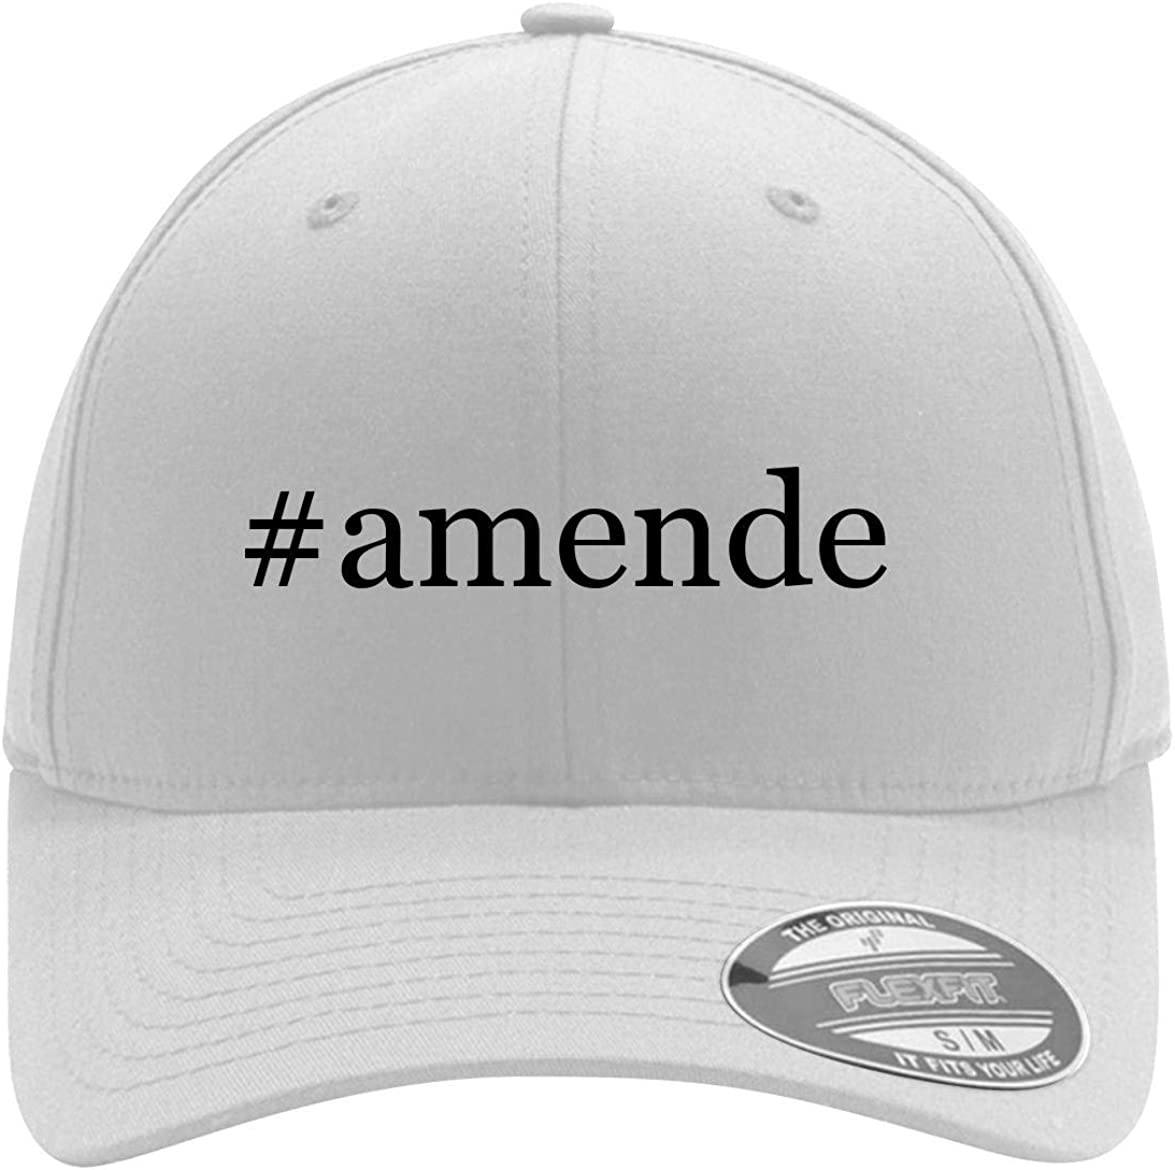 #amende - Adult Men's Hashtag Flexfit Baseball Hat Cap 61NOa0Tw1KL